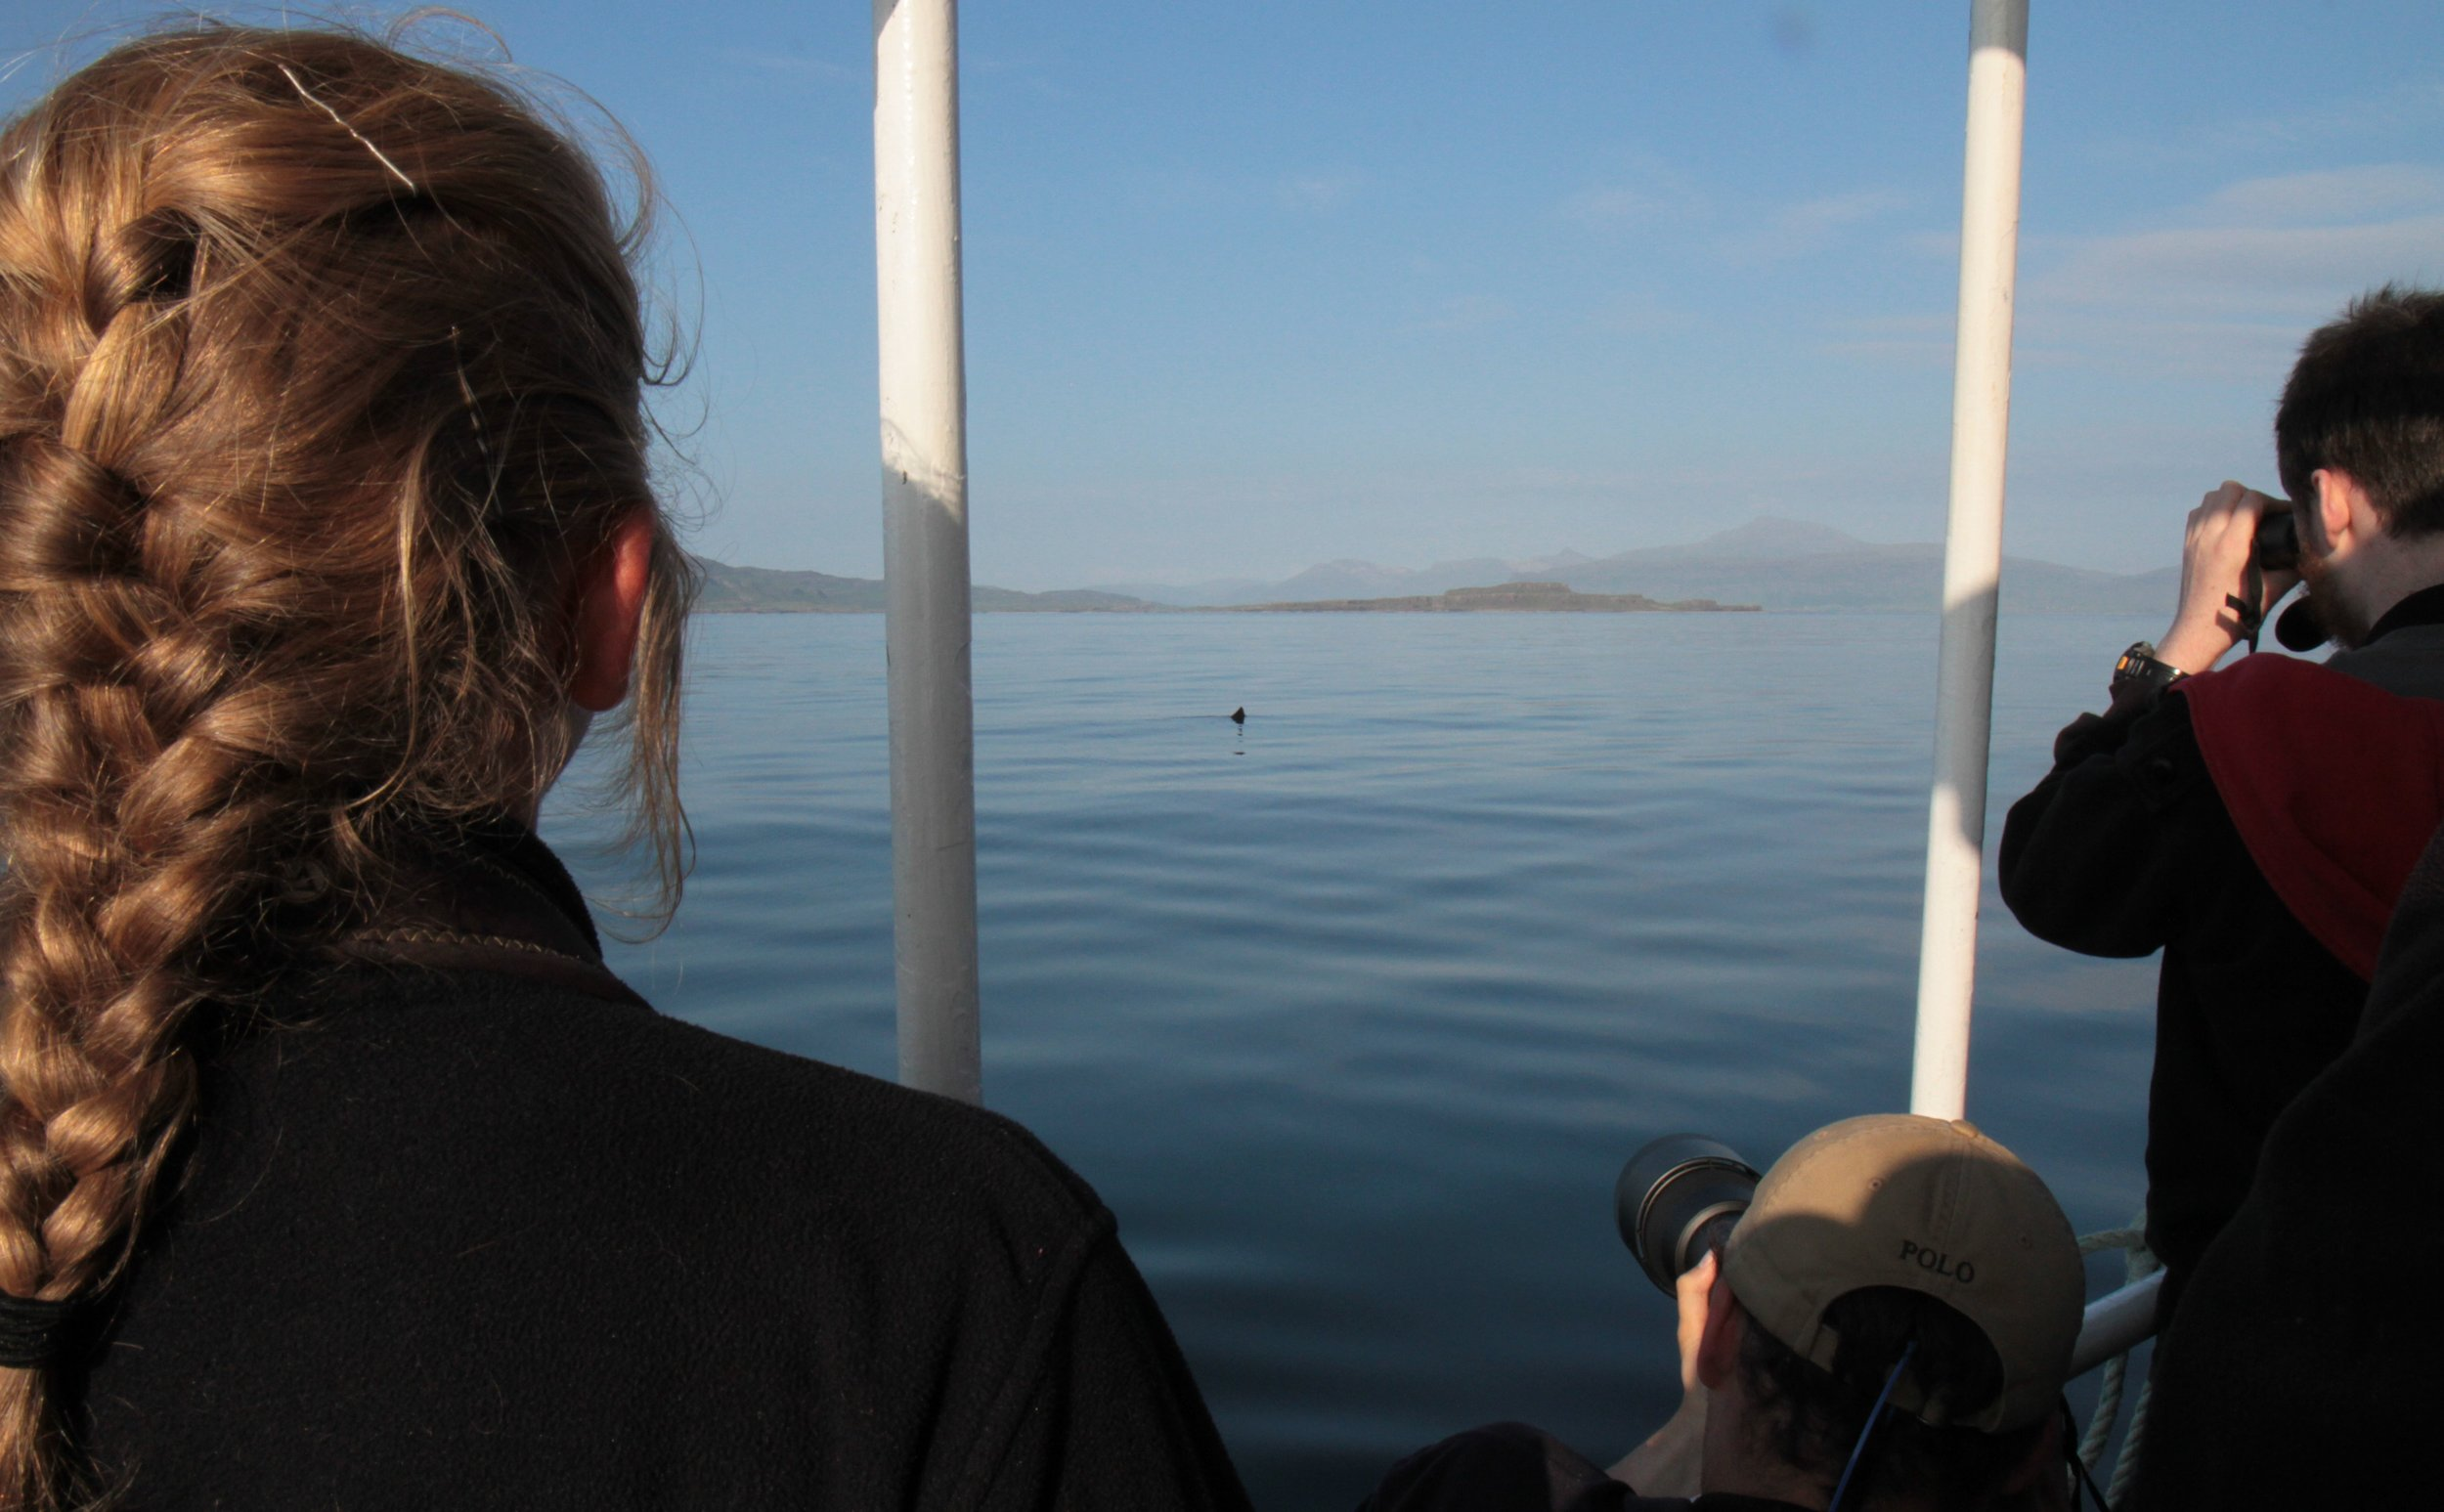 Our first sighting of the day, the destinctive fin of a basking shark lurking beneath the surface